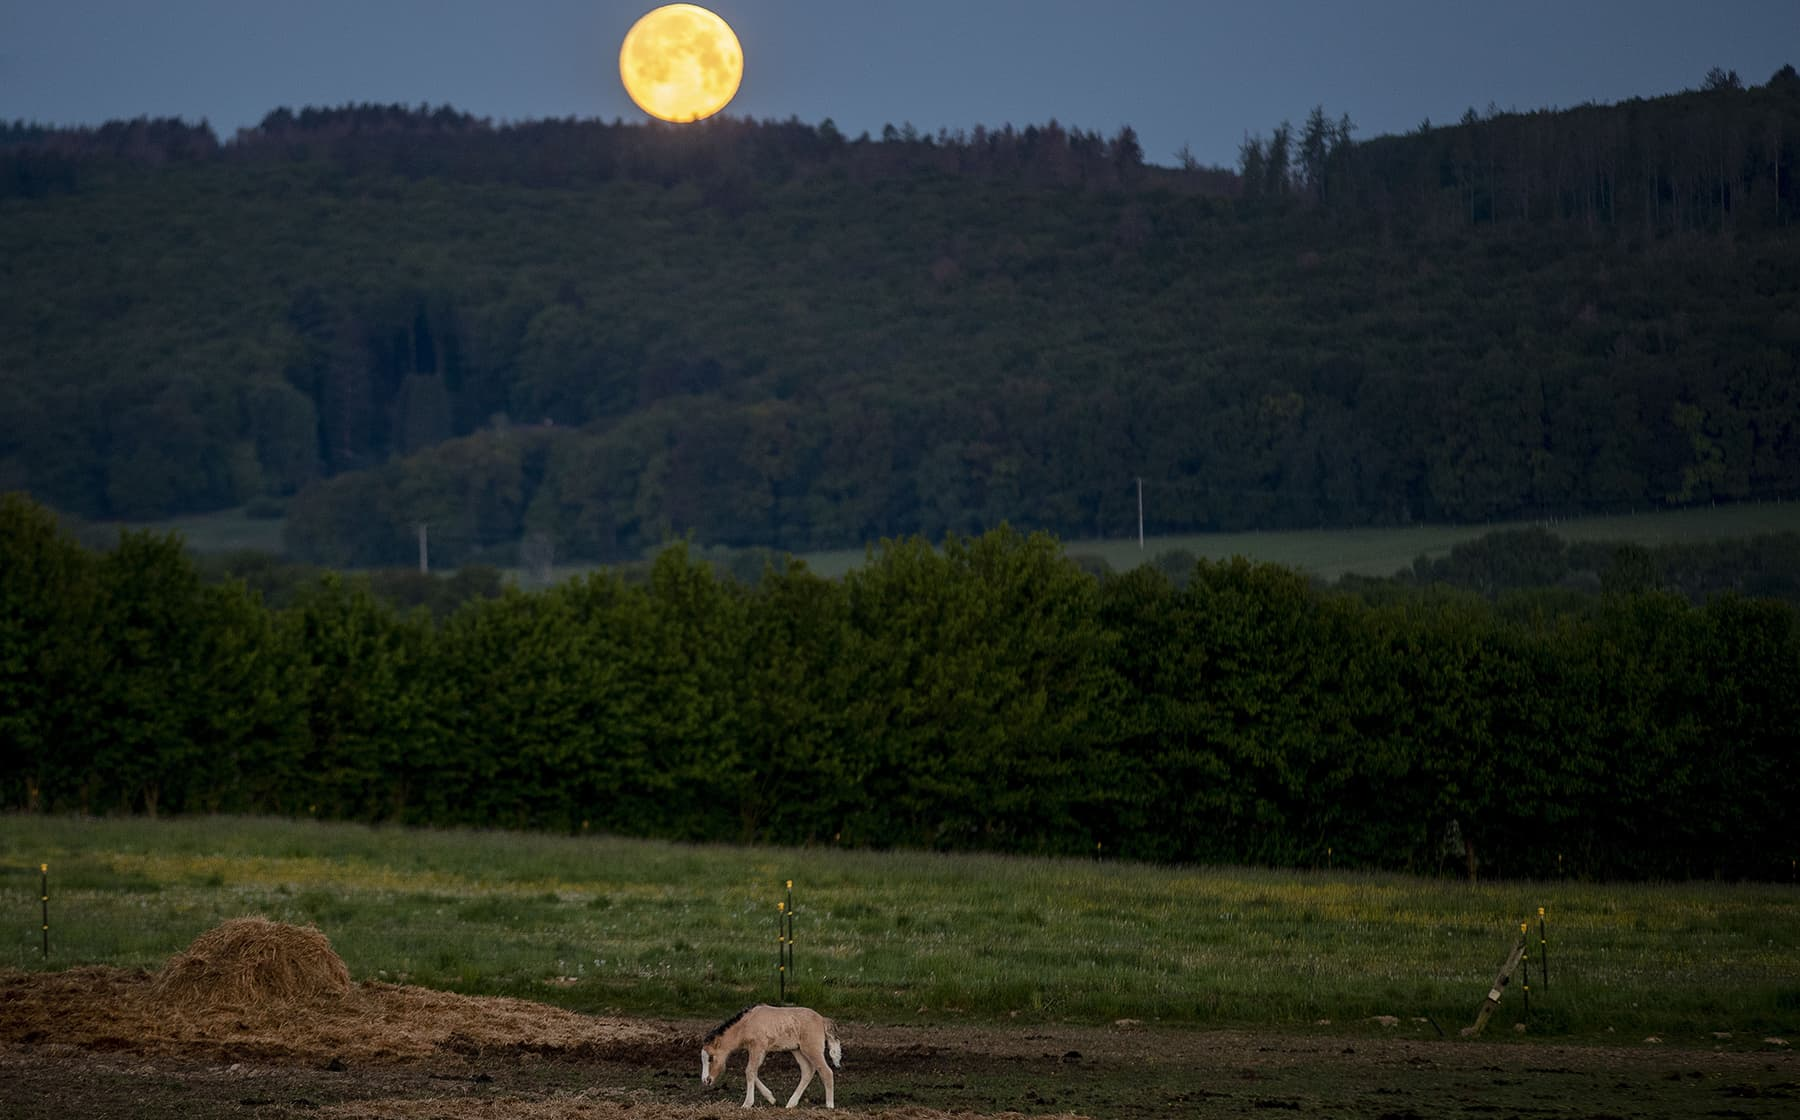 A foal stands in its paddock at a stud farm in Wehrheim near Frankfurt, Germany, as the full moon sets Thursday. — AP